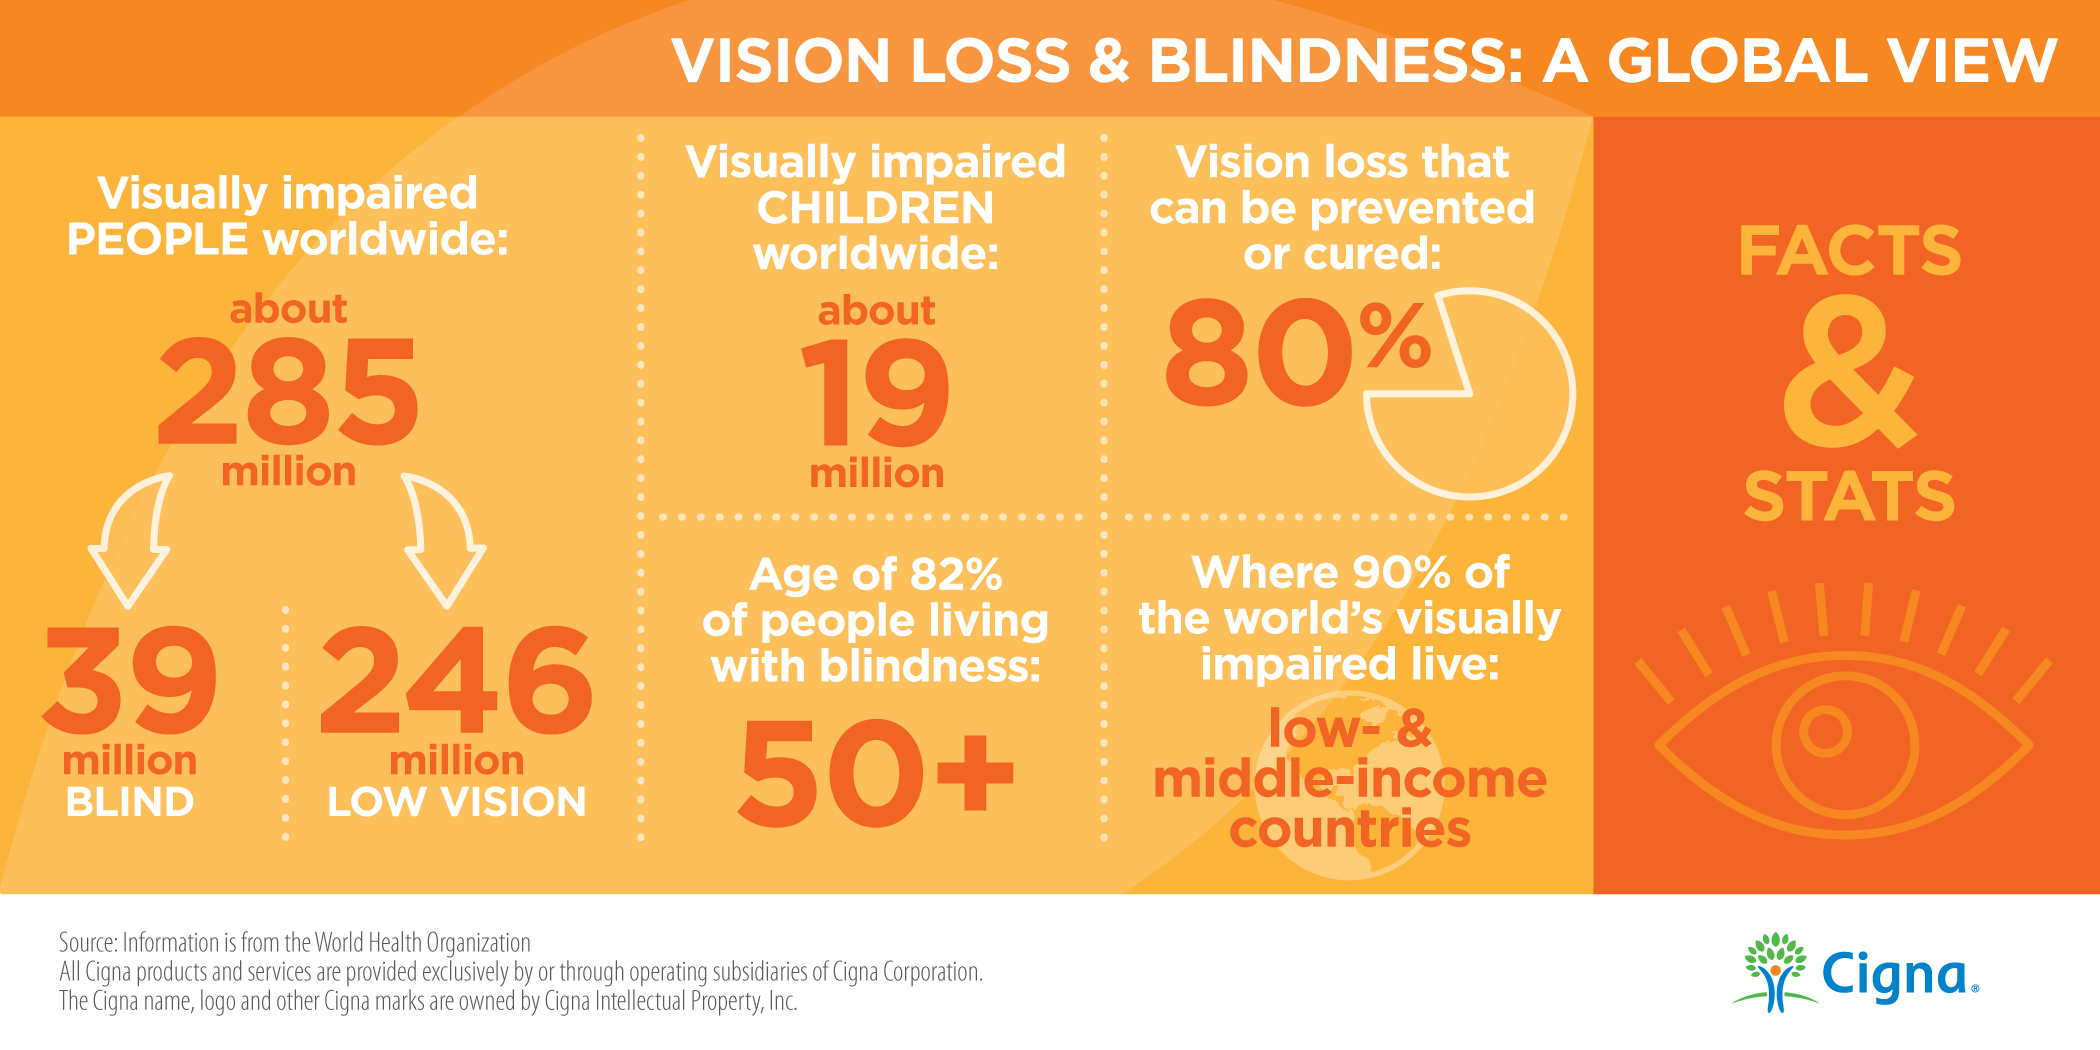 Vision Loss and Blindness: A Global View